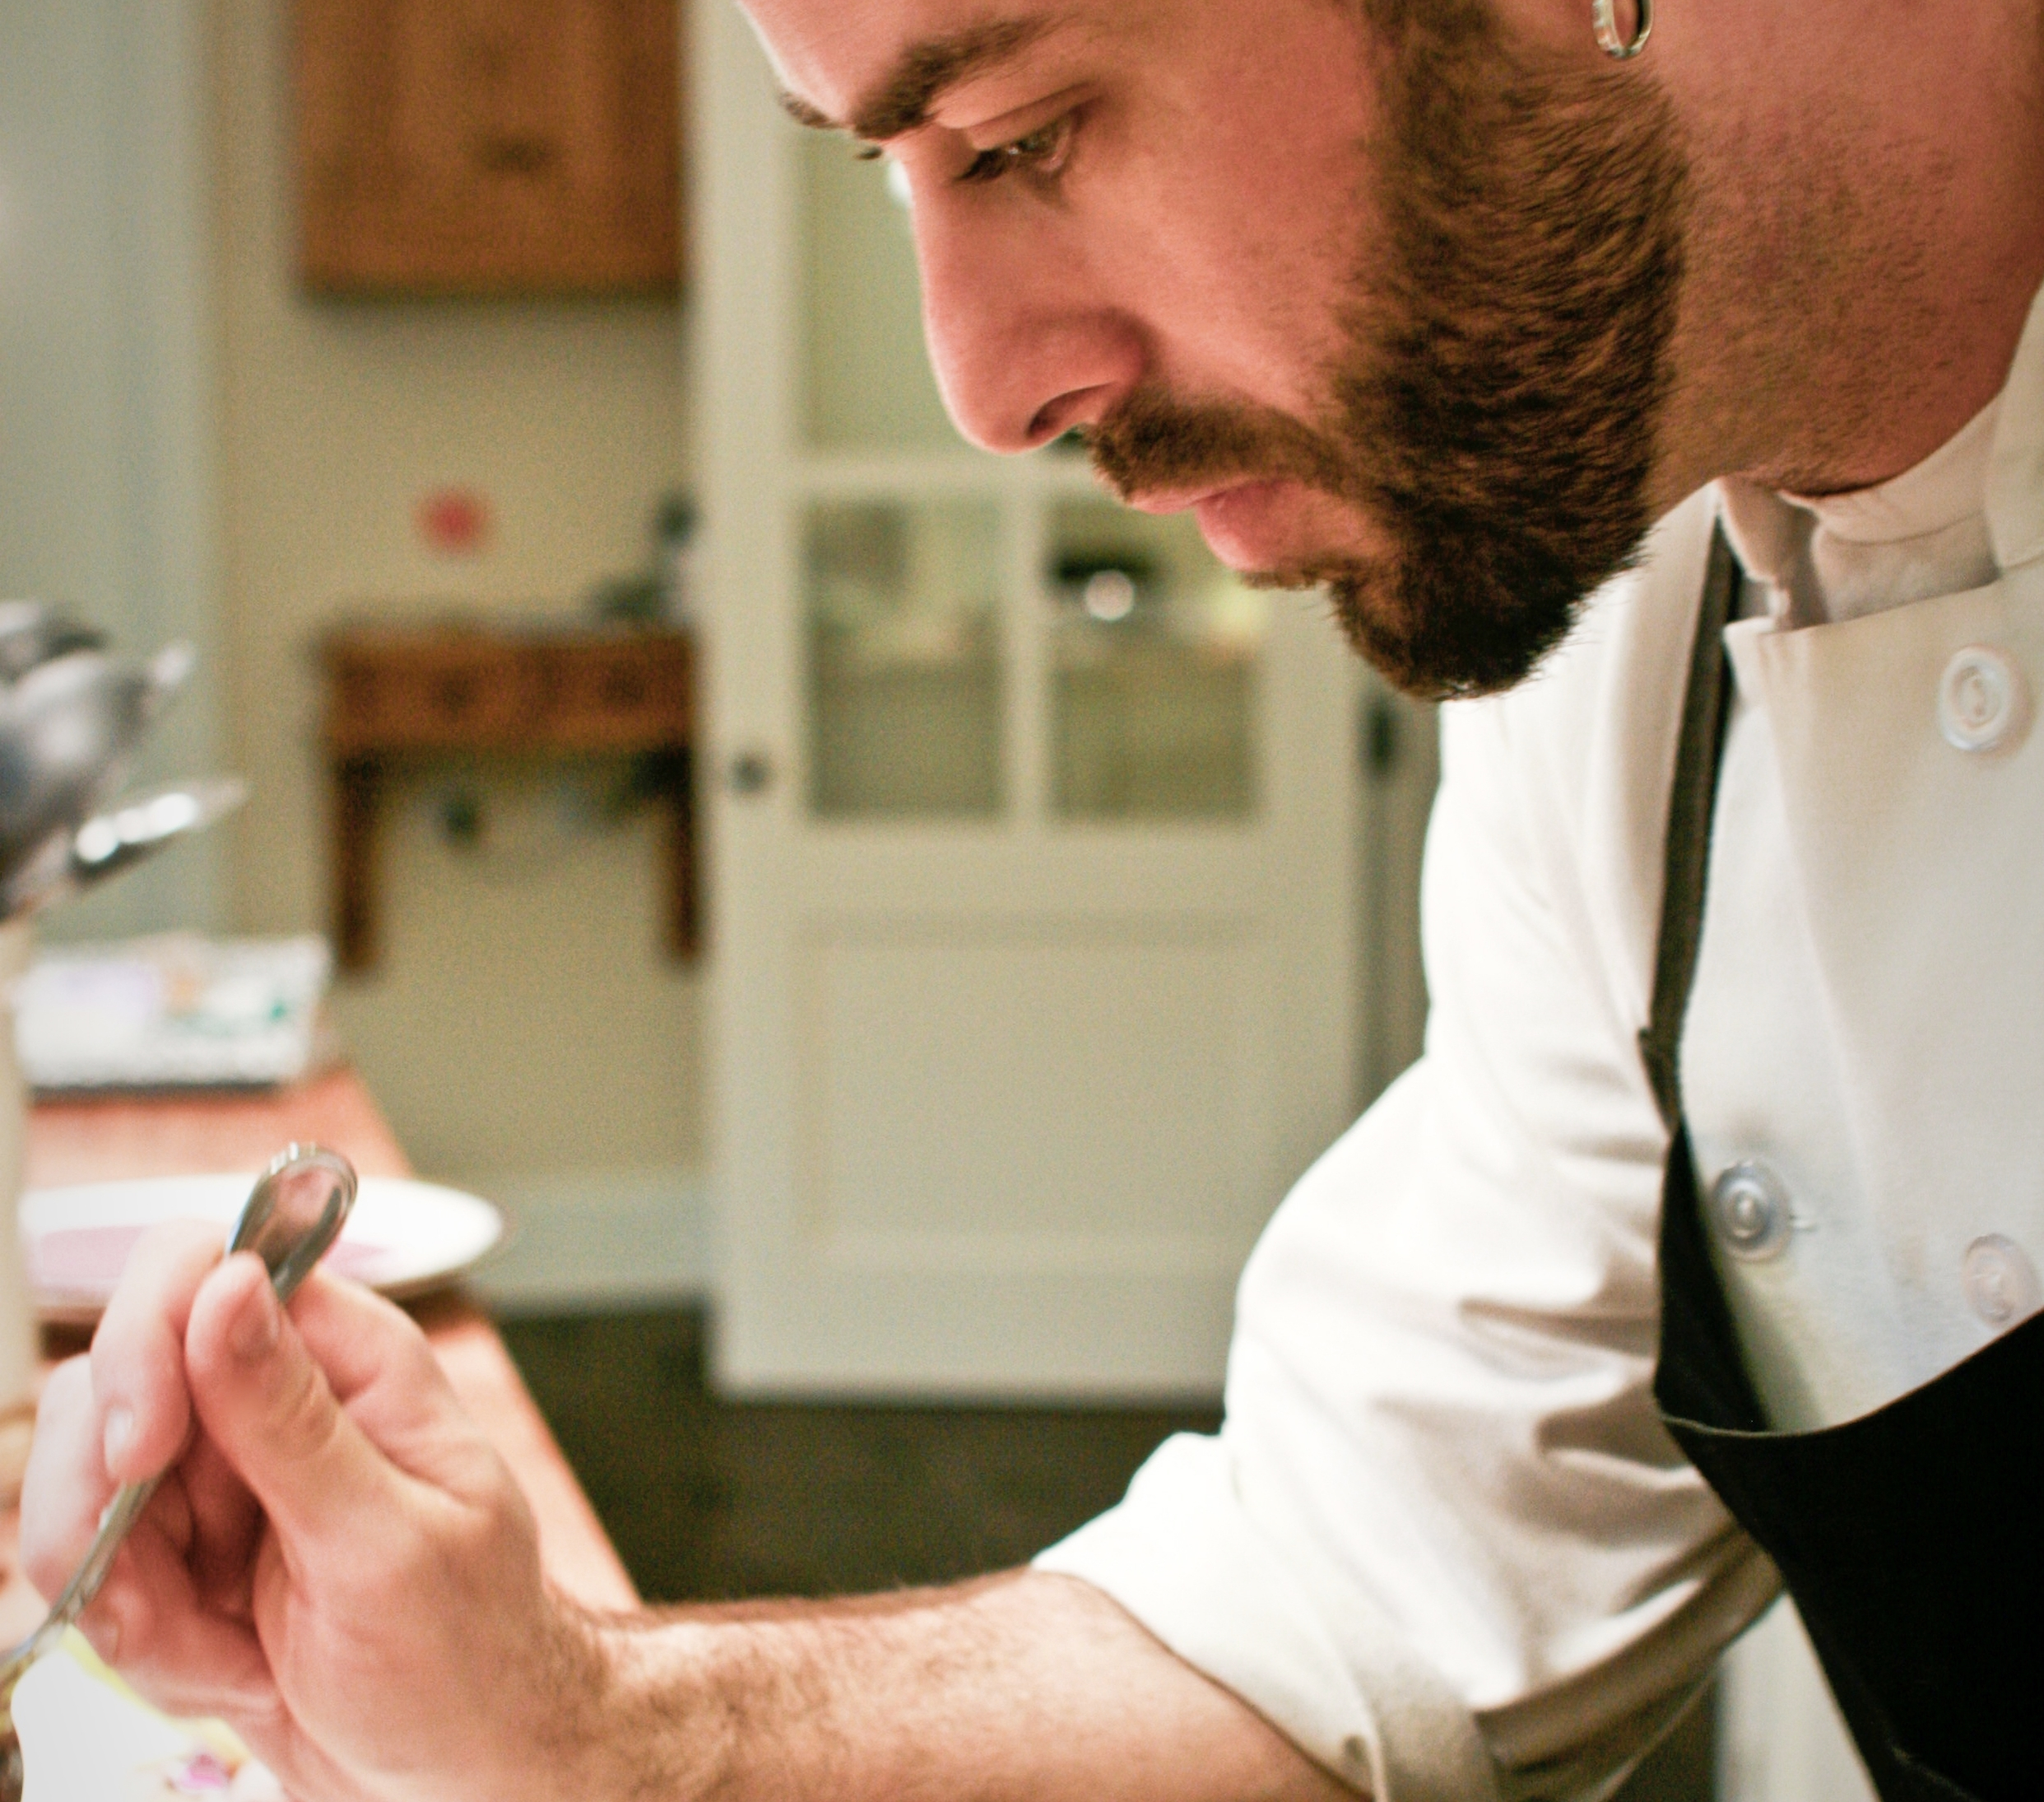 Deep concentration plating a dish